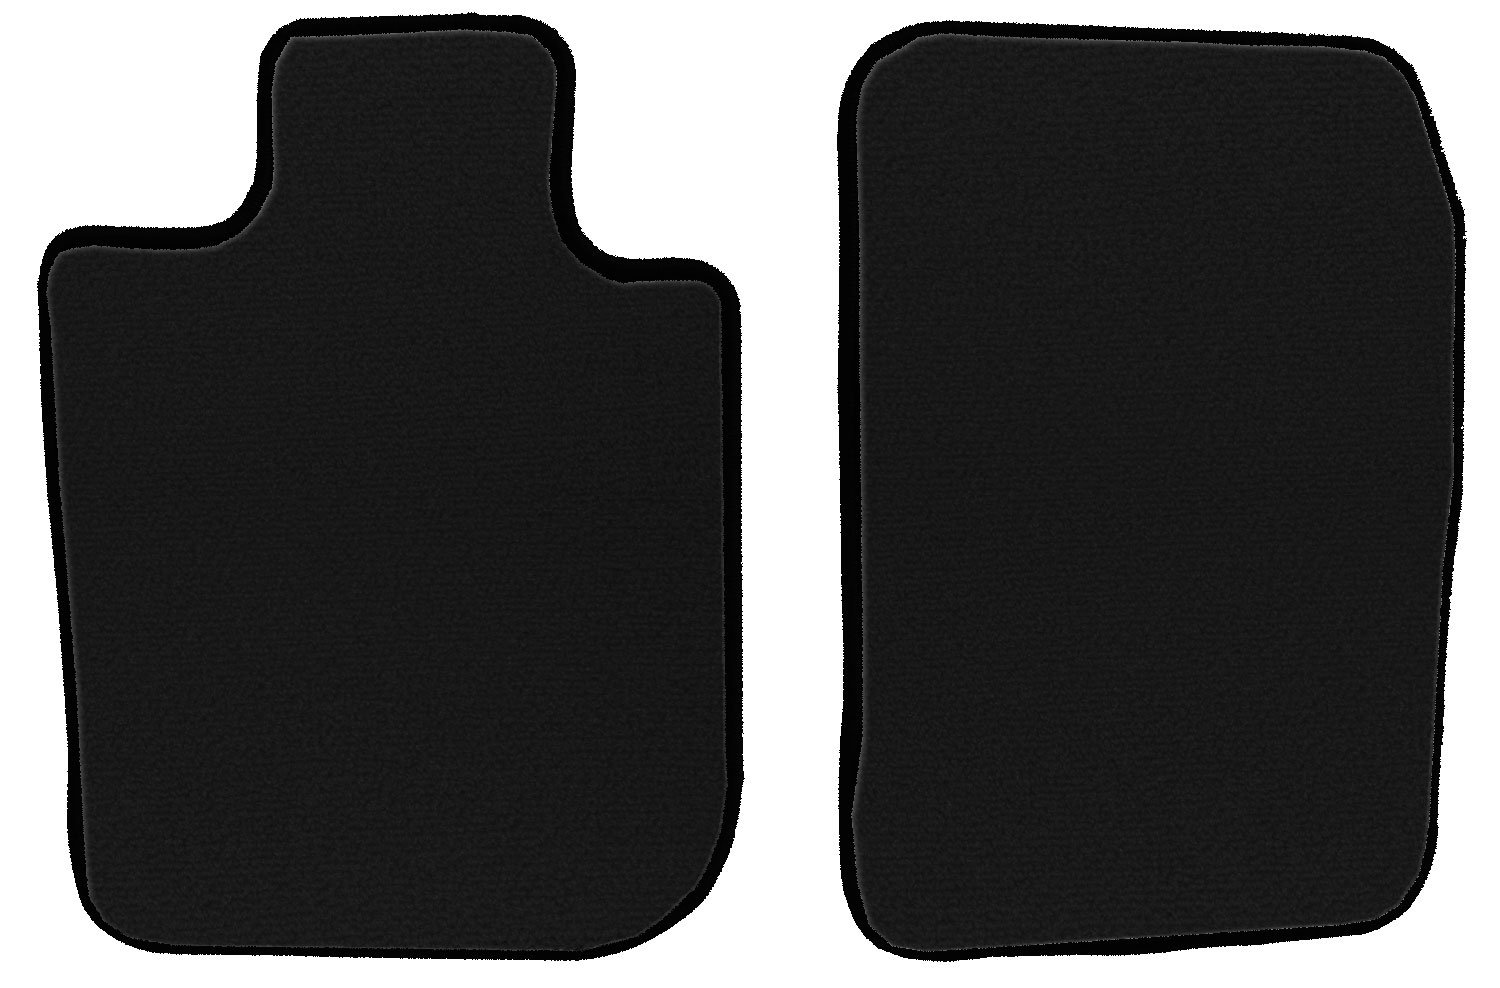 1996 Chevrolet Caprice Classic Wagon Black Loop Driver /& Passenger 1995 1993 1994 1992 GGBAILEY D2903B-F1A-BK-LP Custom Fit Automotive Carpet Floor Mats for 1991